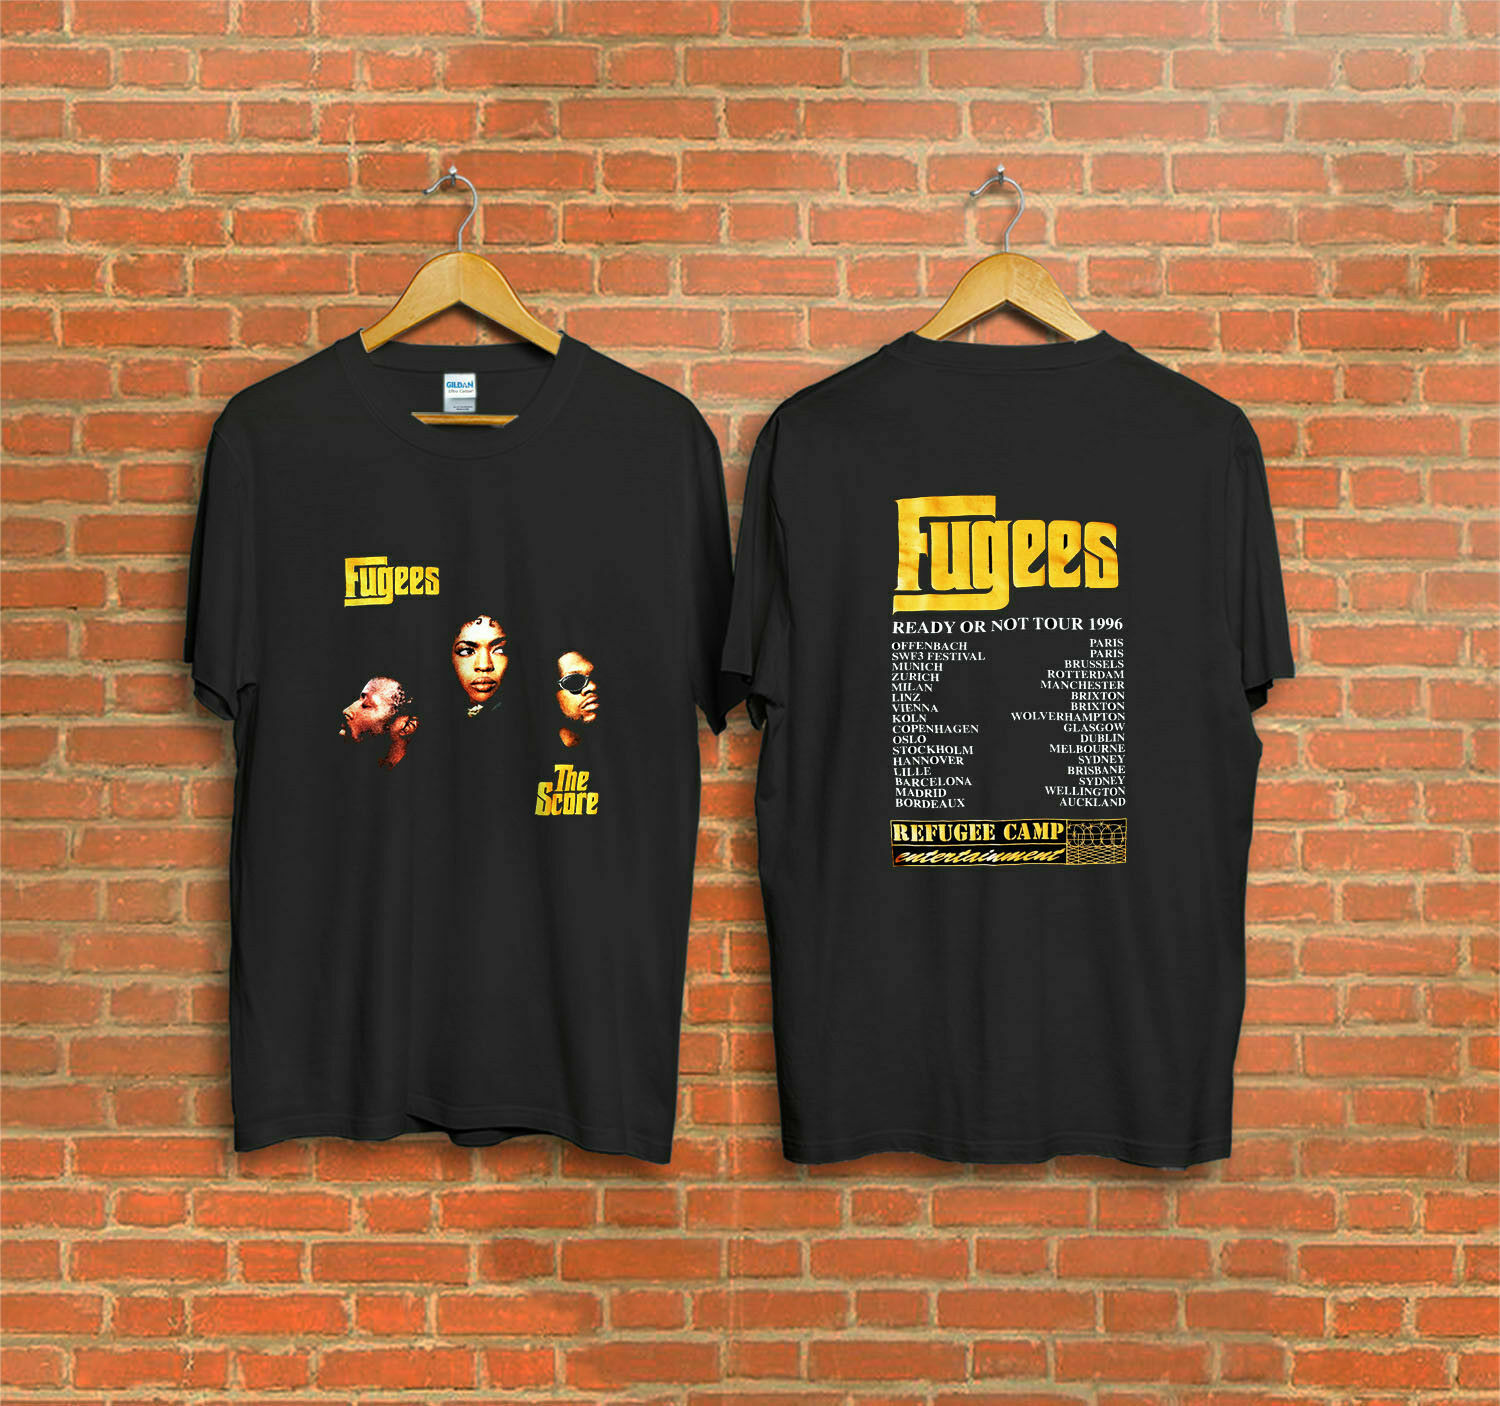 Vintage 1996 Fugees The Score Ready Or Not Concert Tour T-Shirt  Reprint 2018 Summer Men'S Brand Clothing O-Neck T Shirt